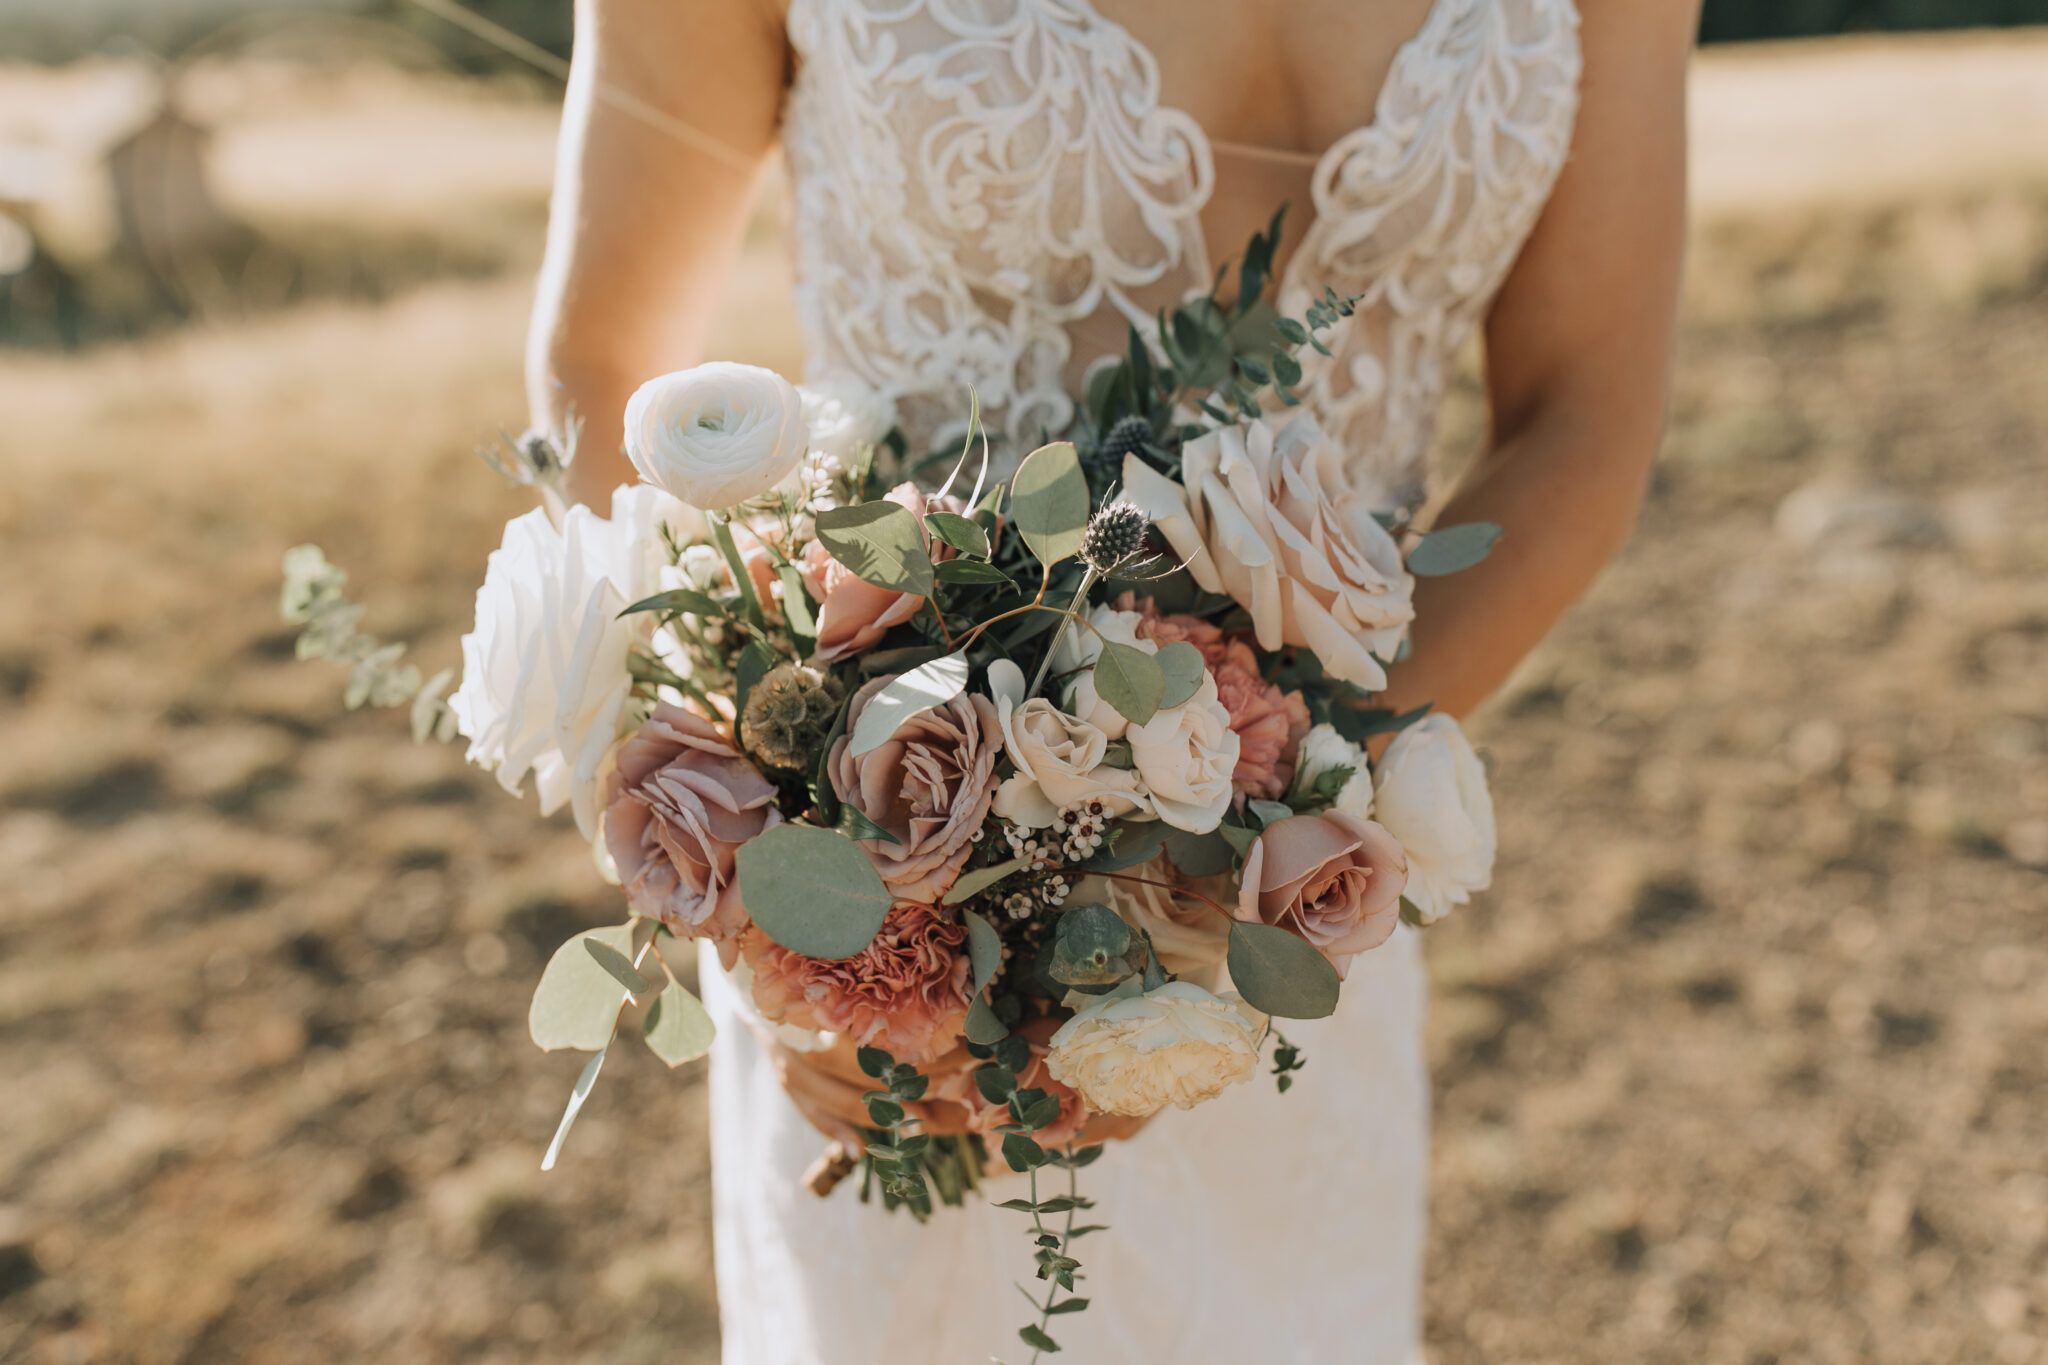 Arielle And Vince S Scenic Arizona Snowbowl Mountain Wedding Arraydesignaz Com Blog In 2020 Mountain Wedding Bridal Bouquet Fall Neutral Wedding Colors